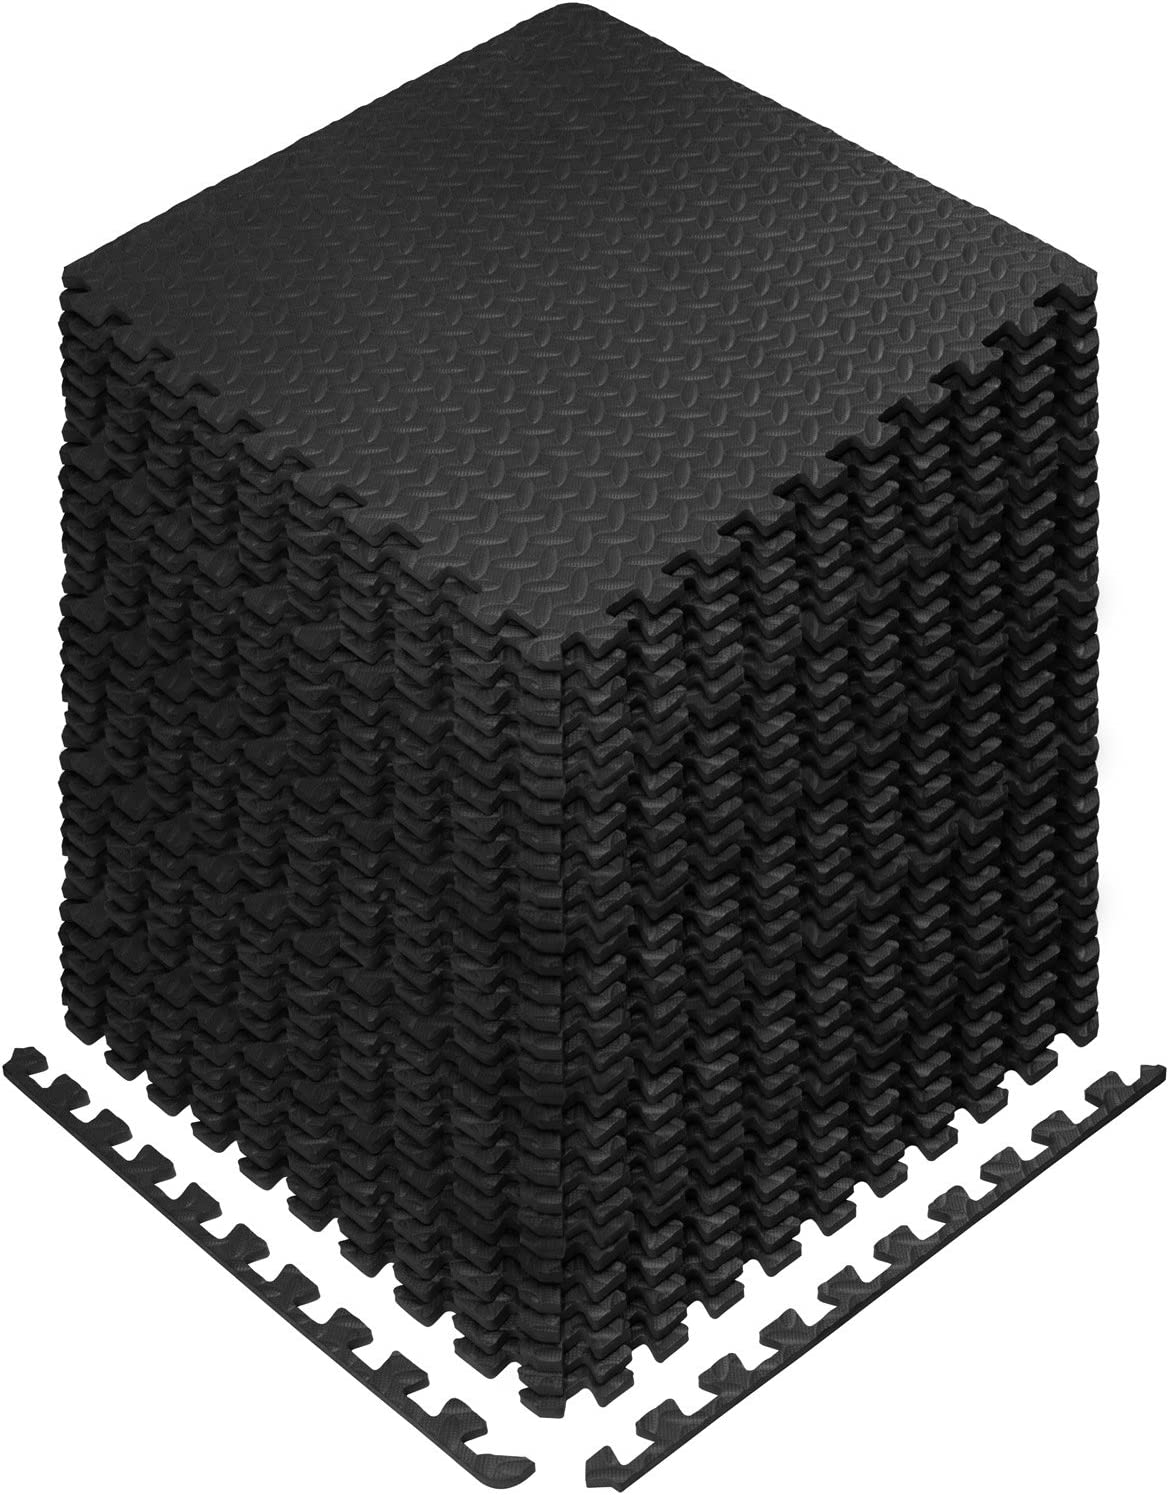 Yes4All Interlocking Exercise Foam Mats - 24 & 120 SqFt (Black or Gray)